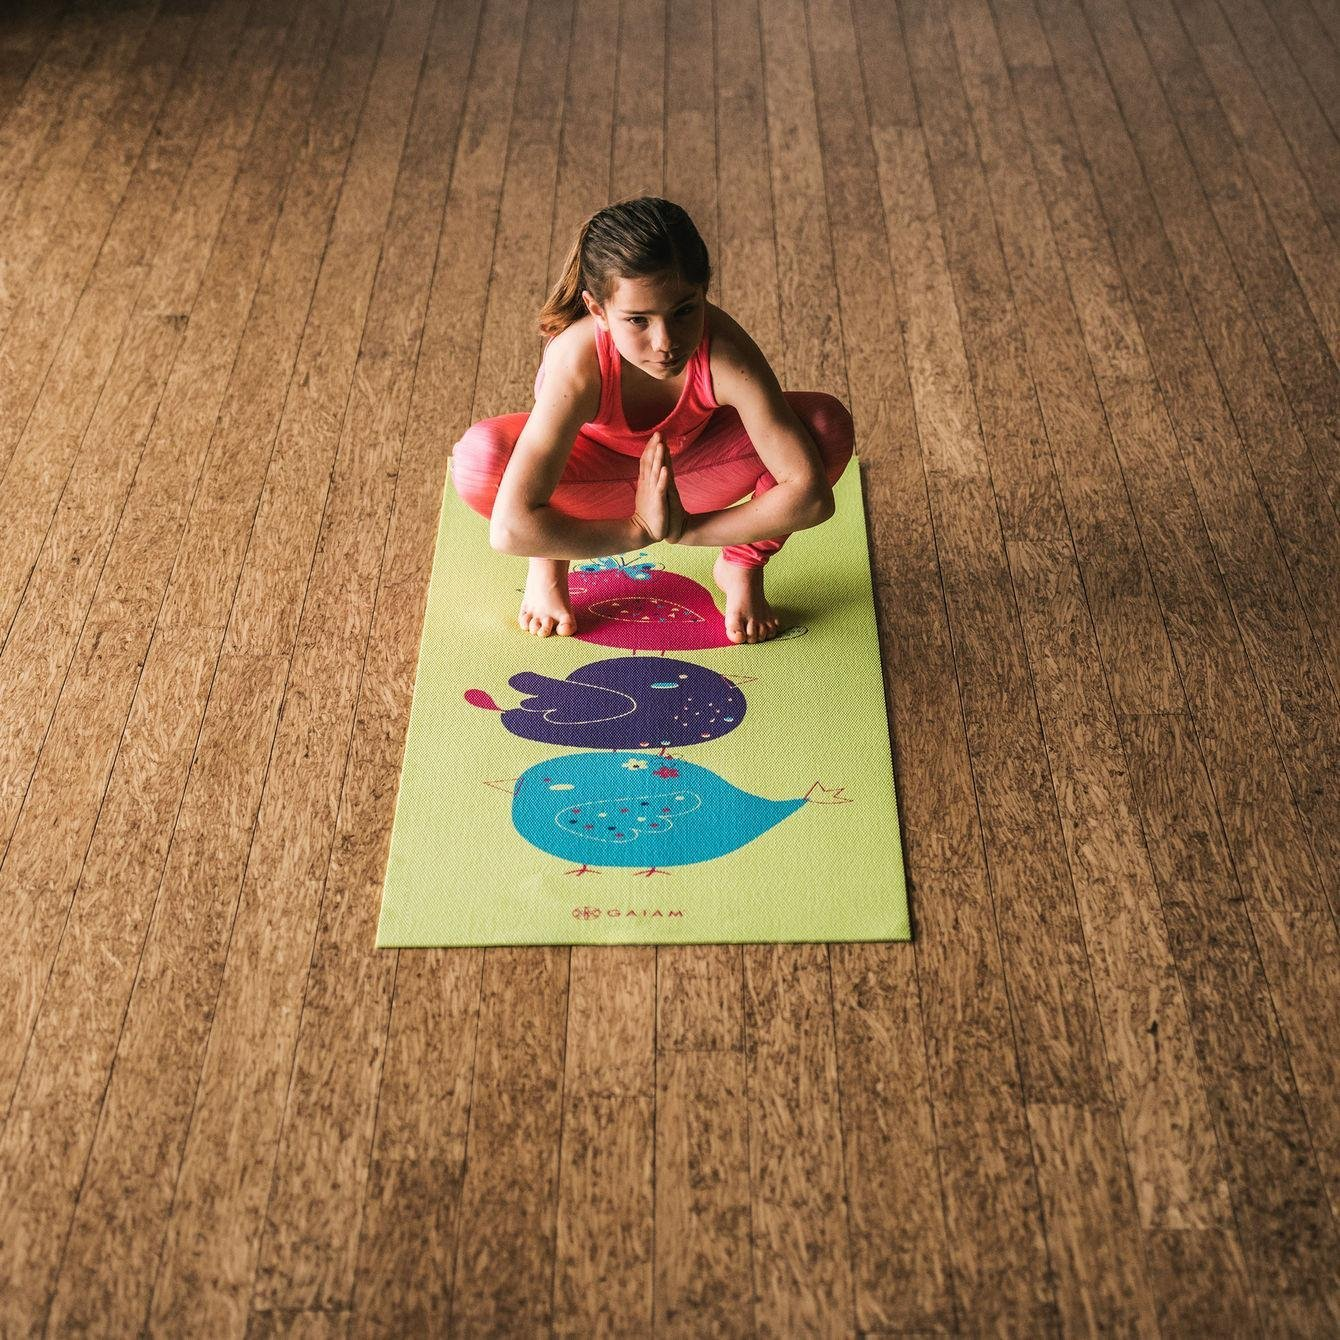 Amazon.com : Gaiam Kids Yoga Mat Exercise Mat, Yoga for